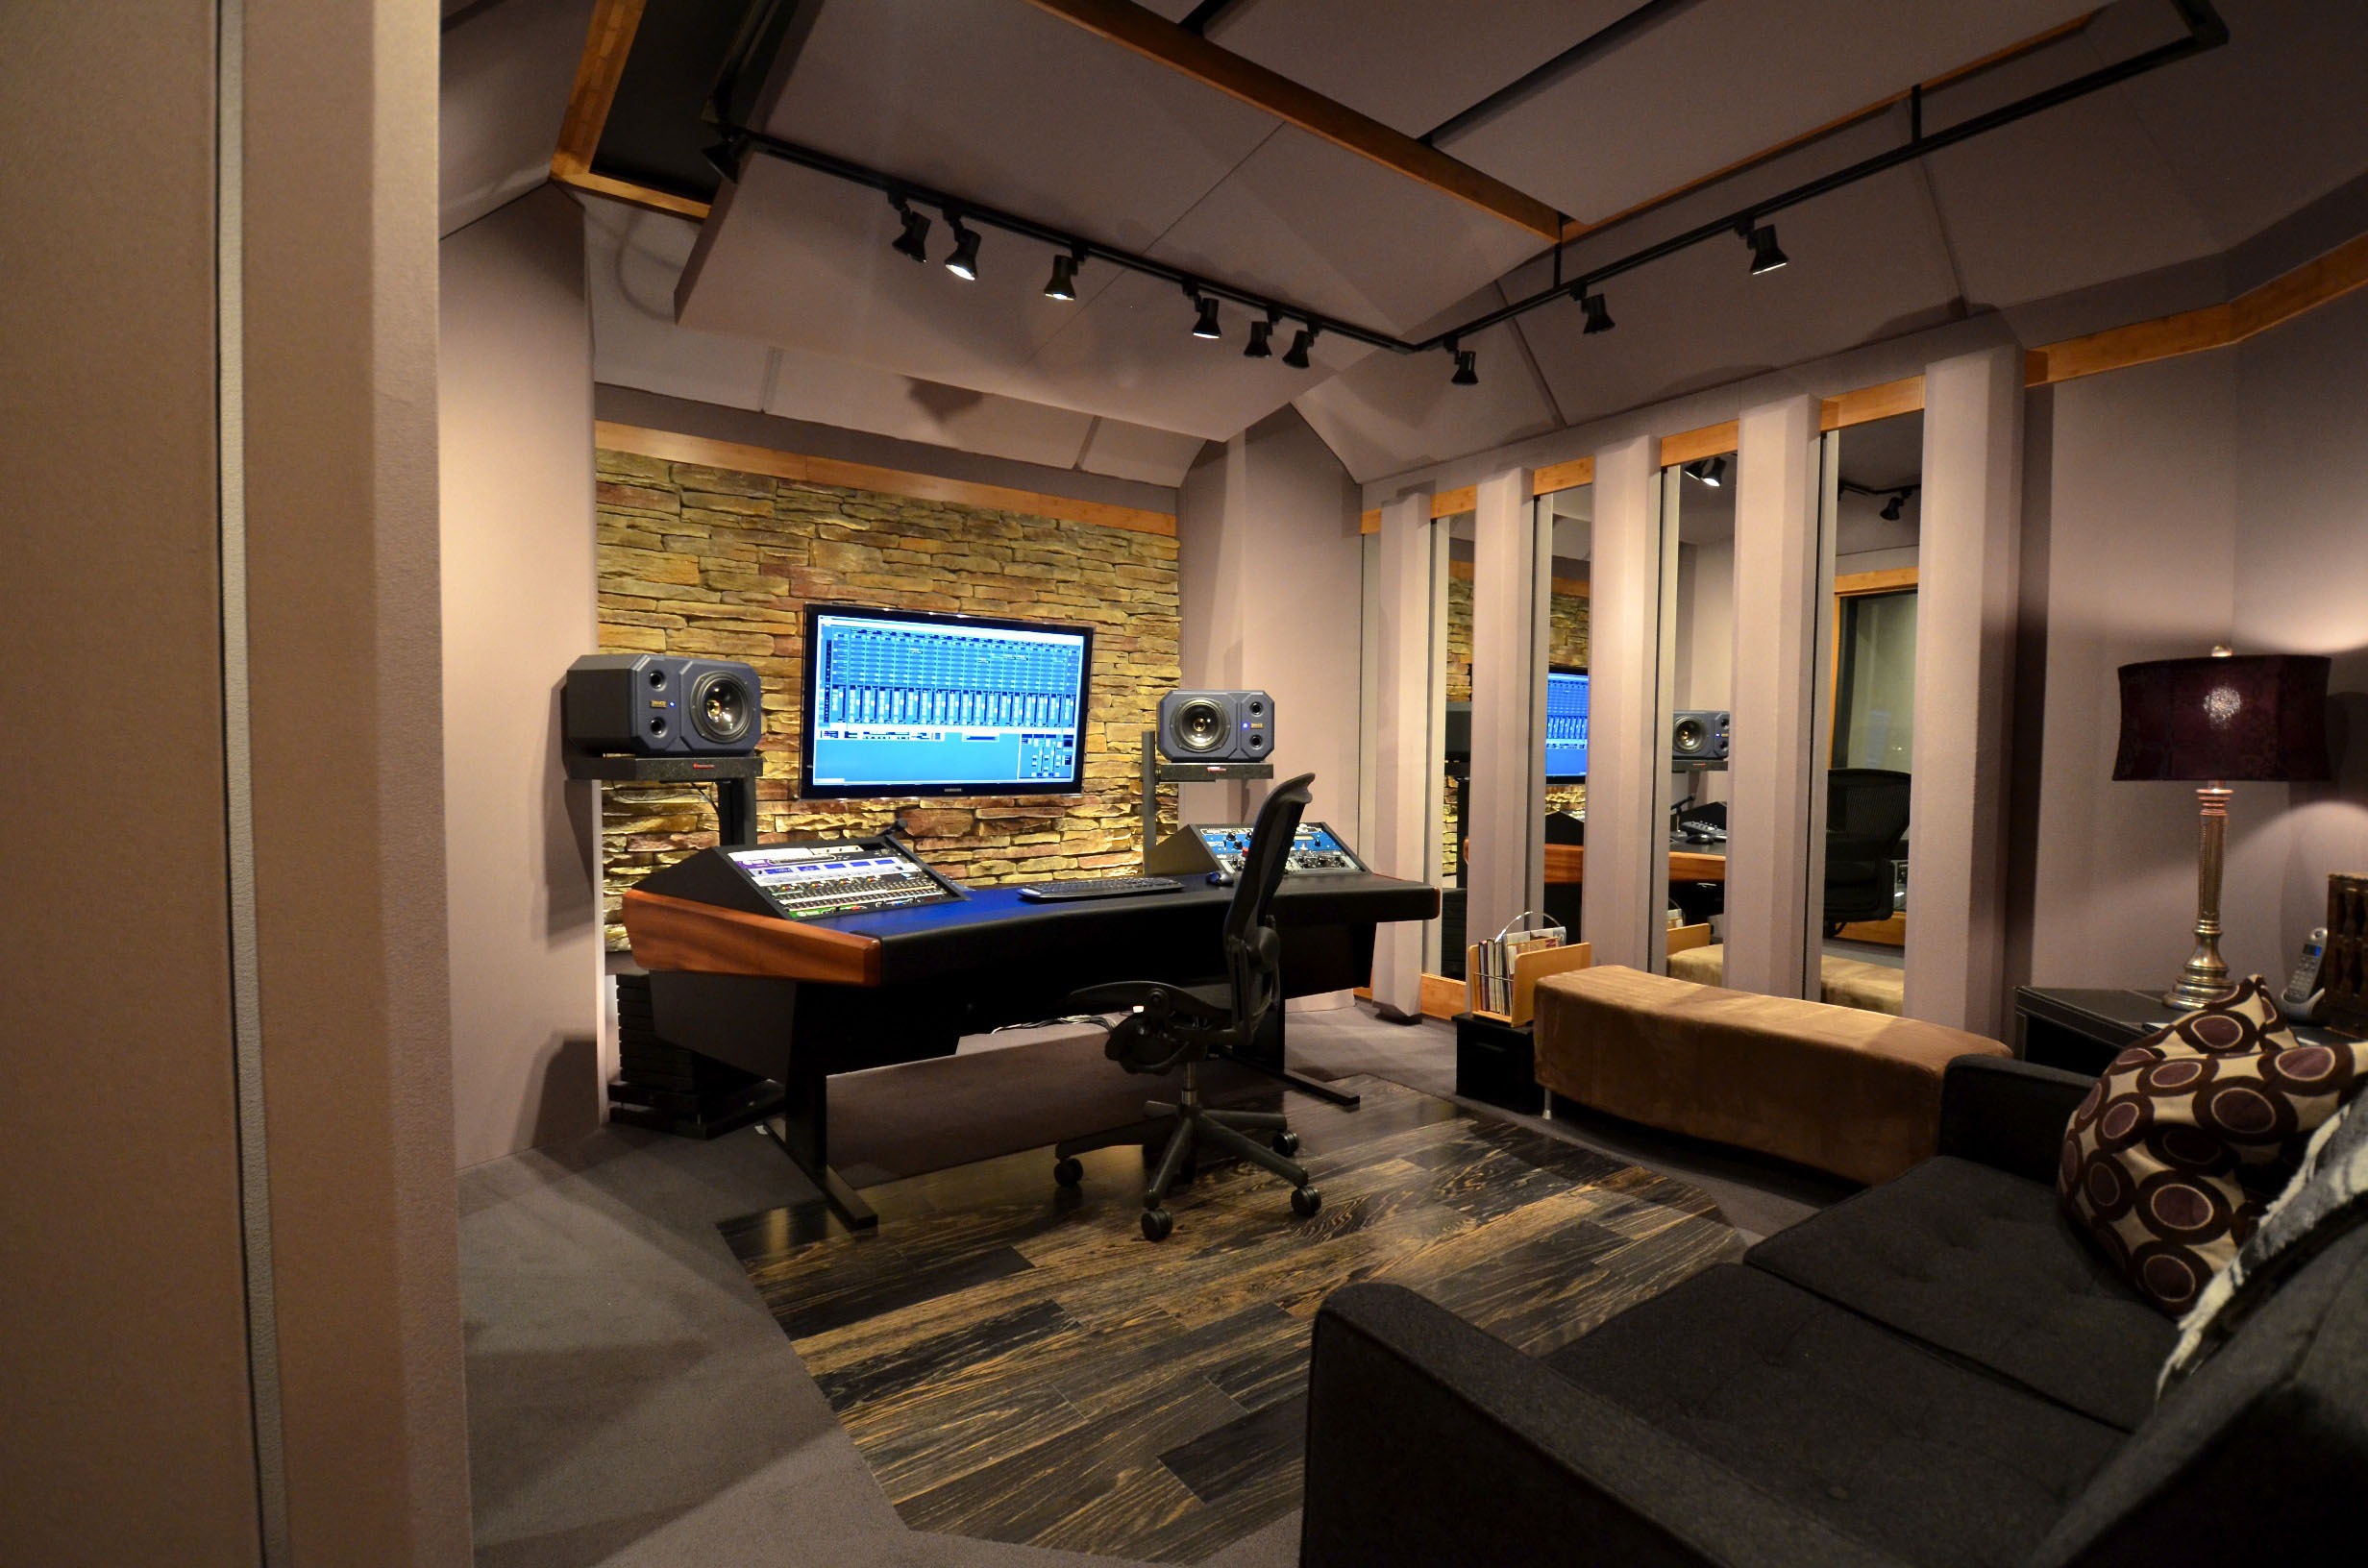 Studio Room Design Ideas home recording studio design ideas - home design